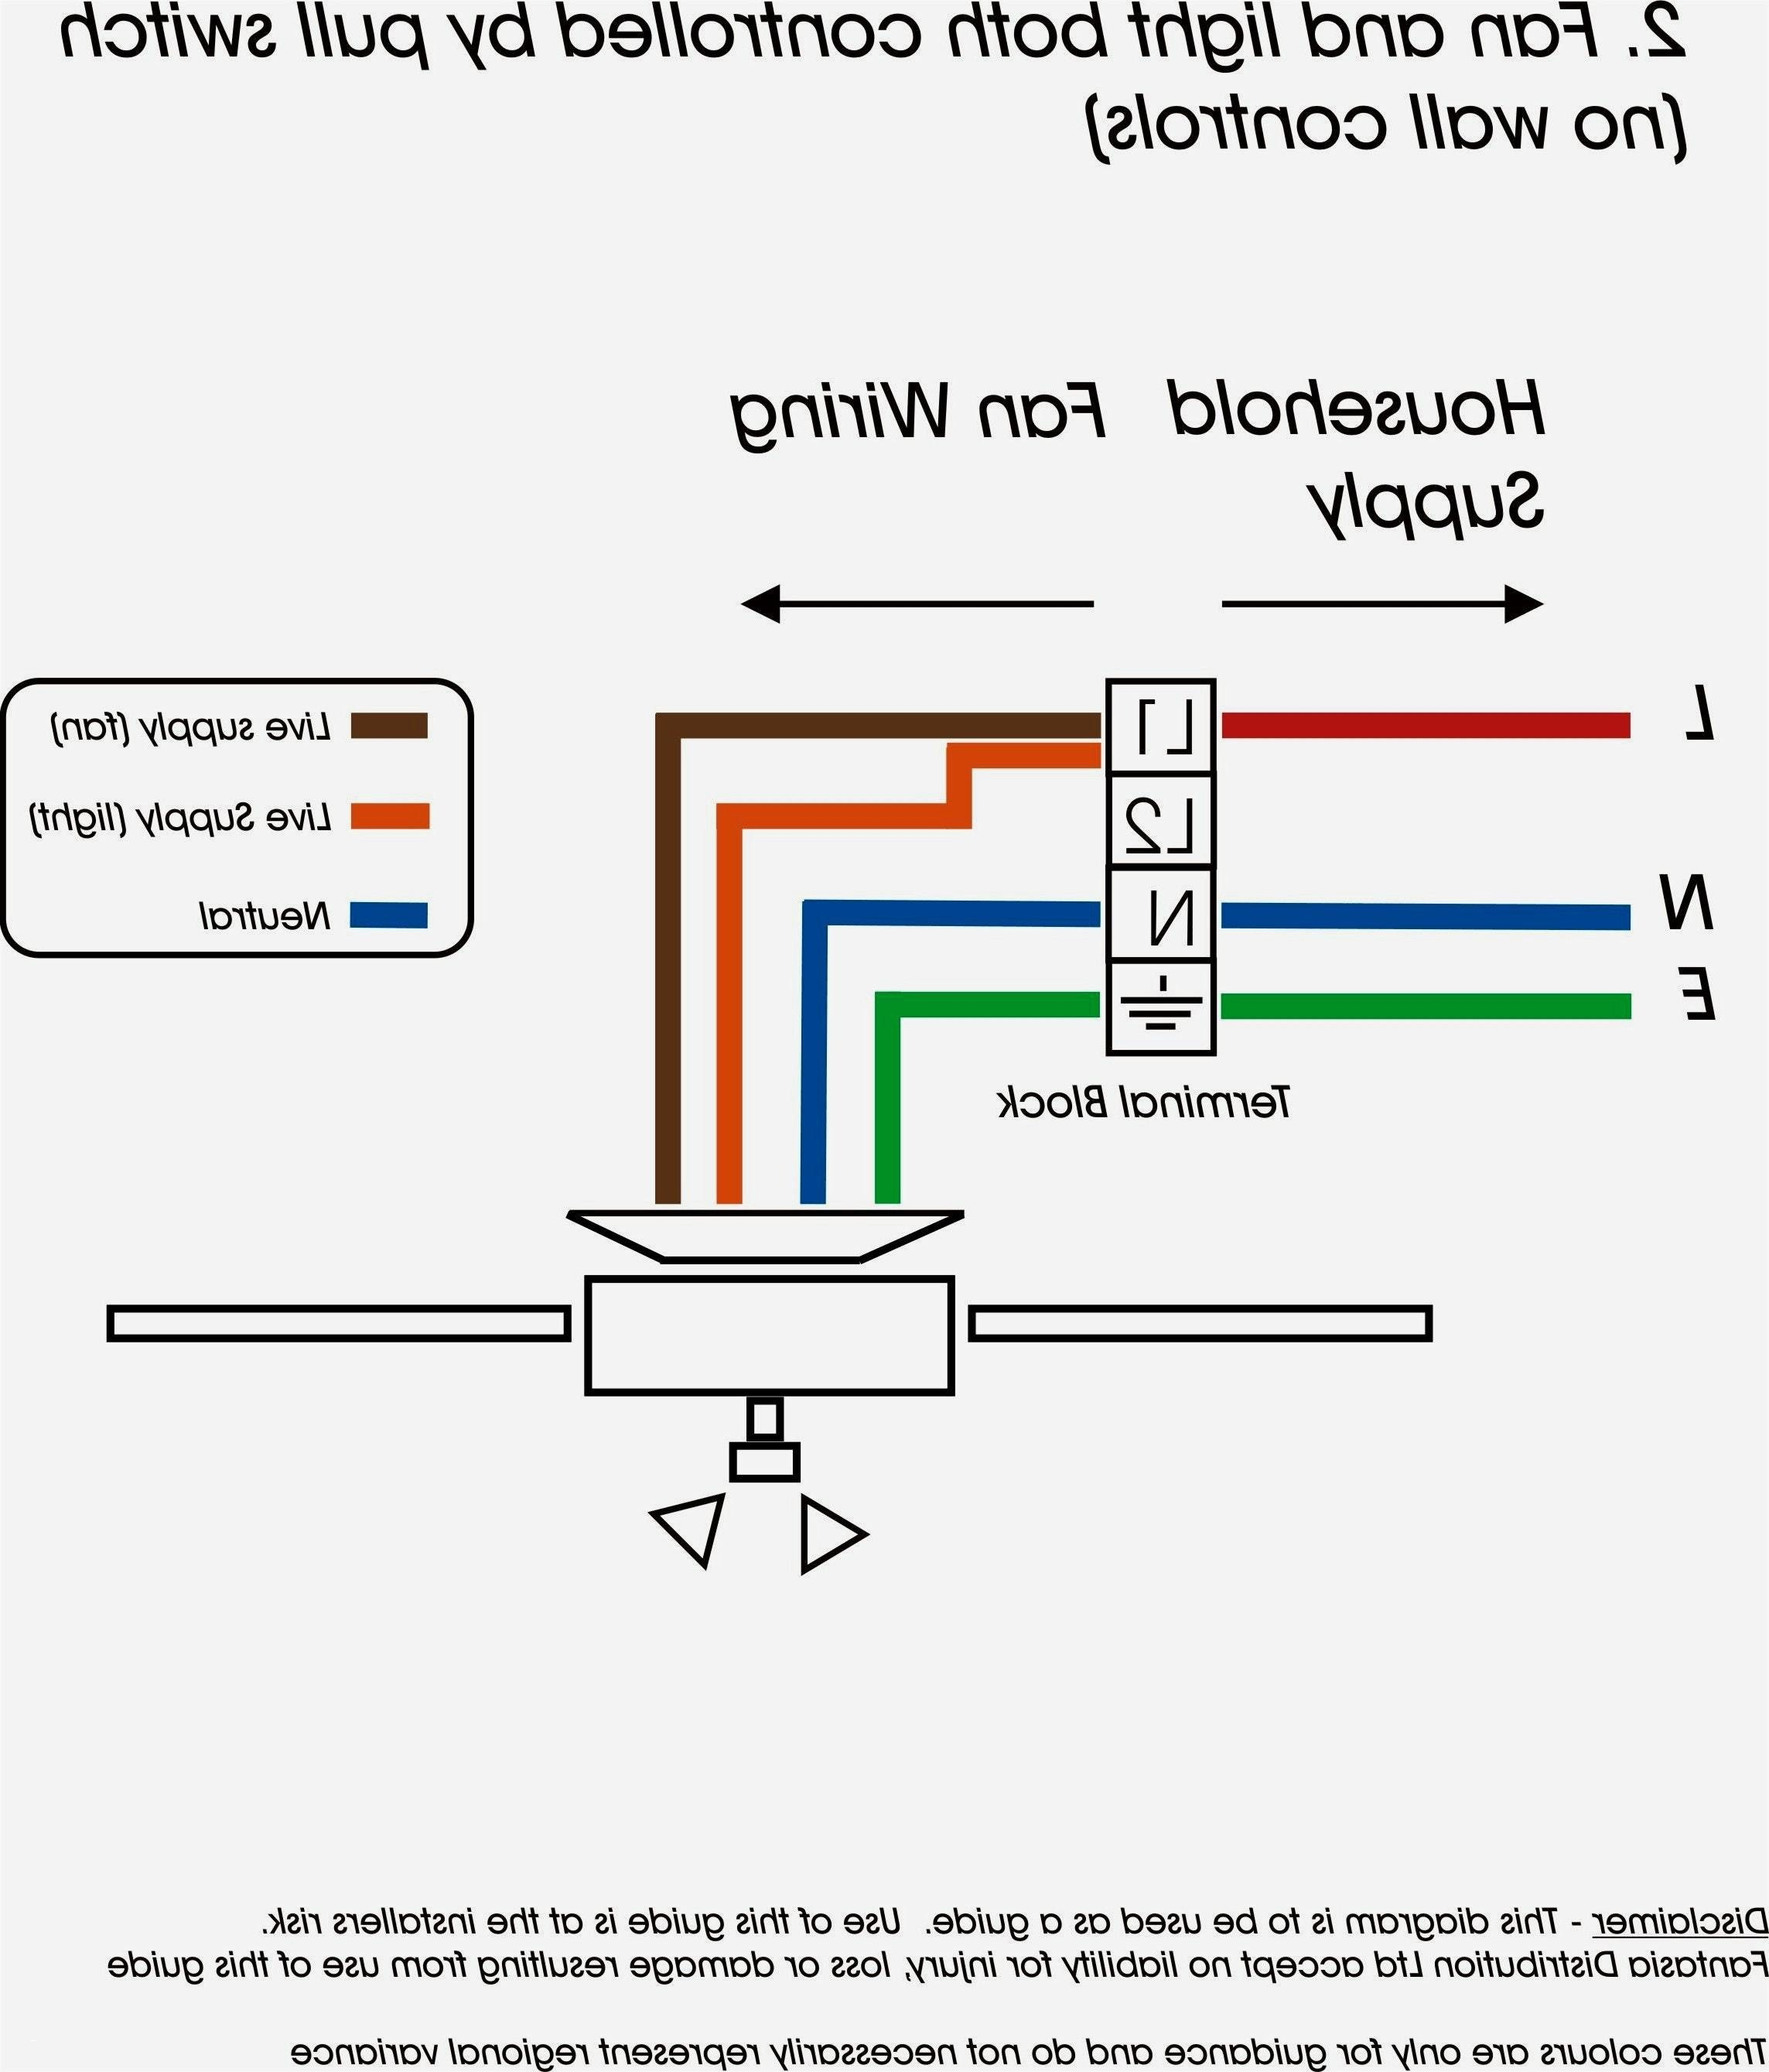 Truck and Trailer Wiring Diagram Trailer Wiring Diagram House Another Blog About Wiring Diagram • Of Truck and Trailer Wiring Diagram